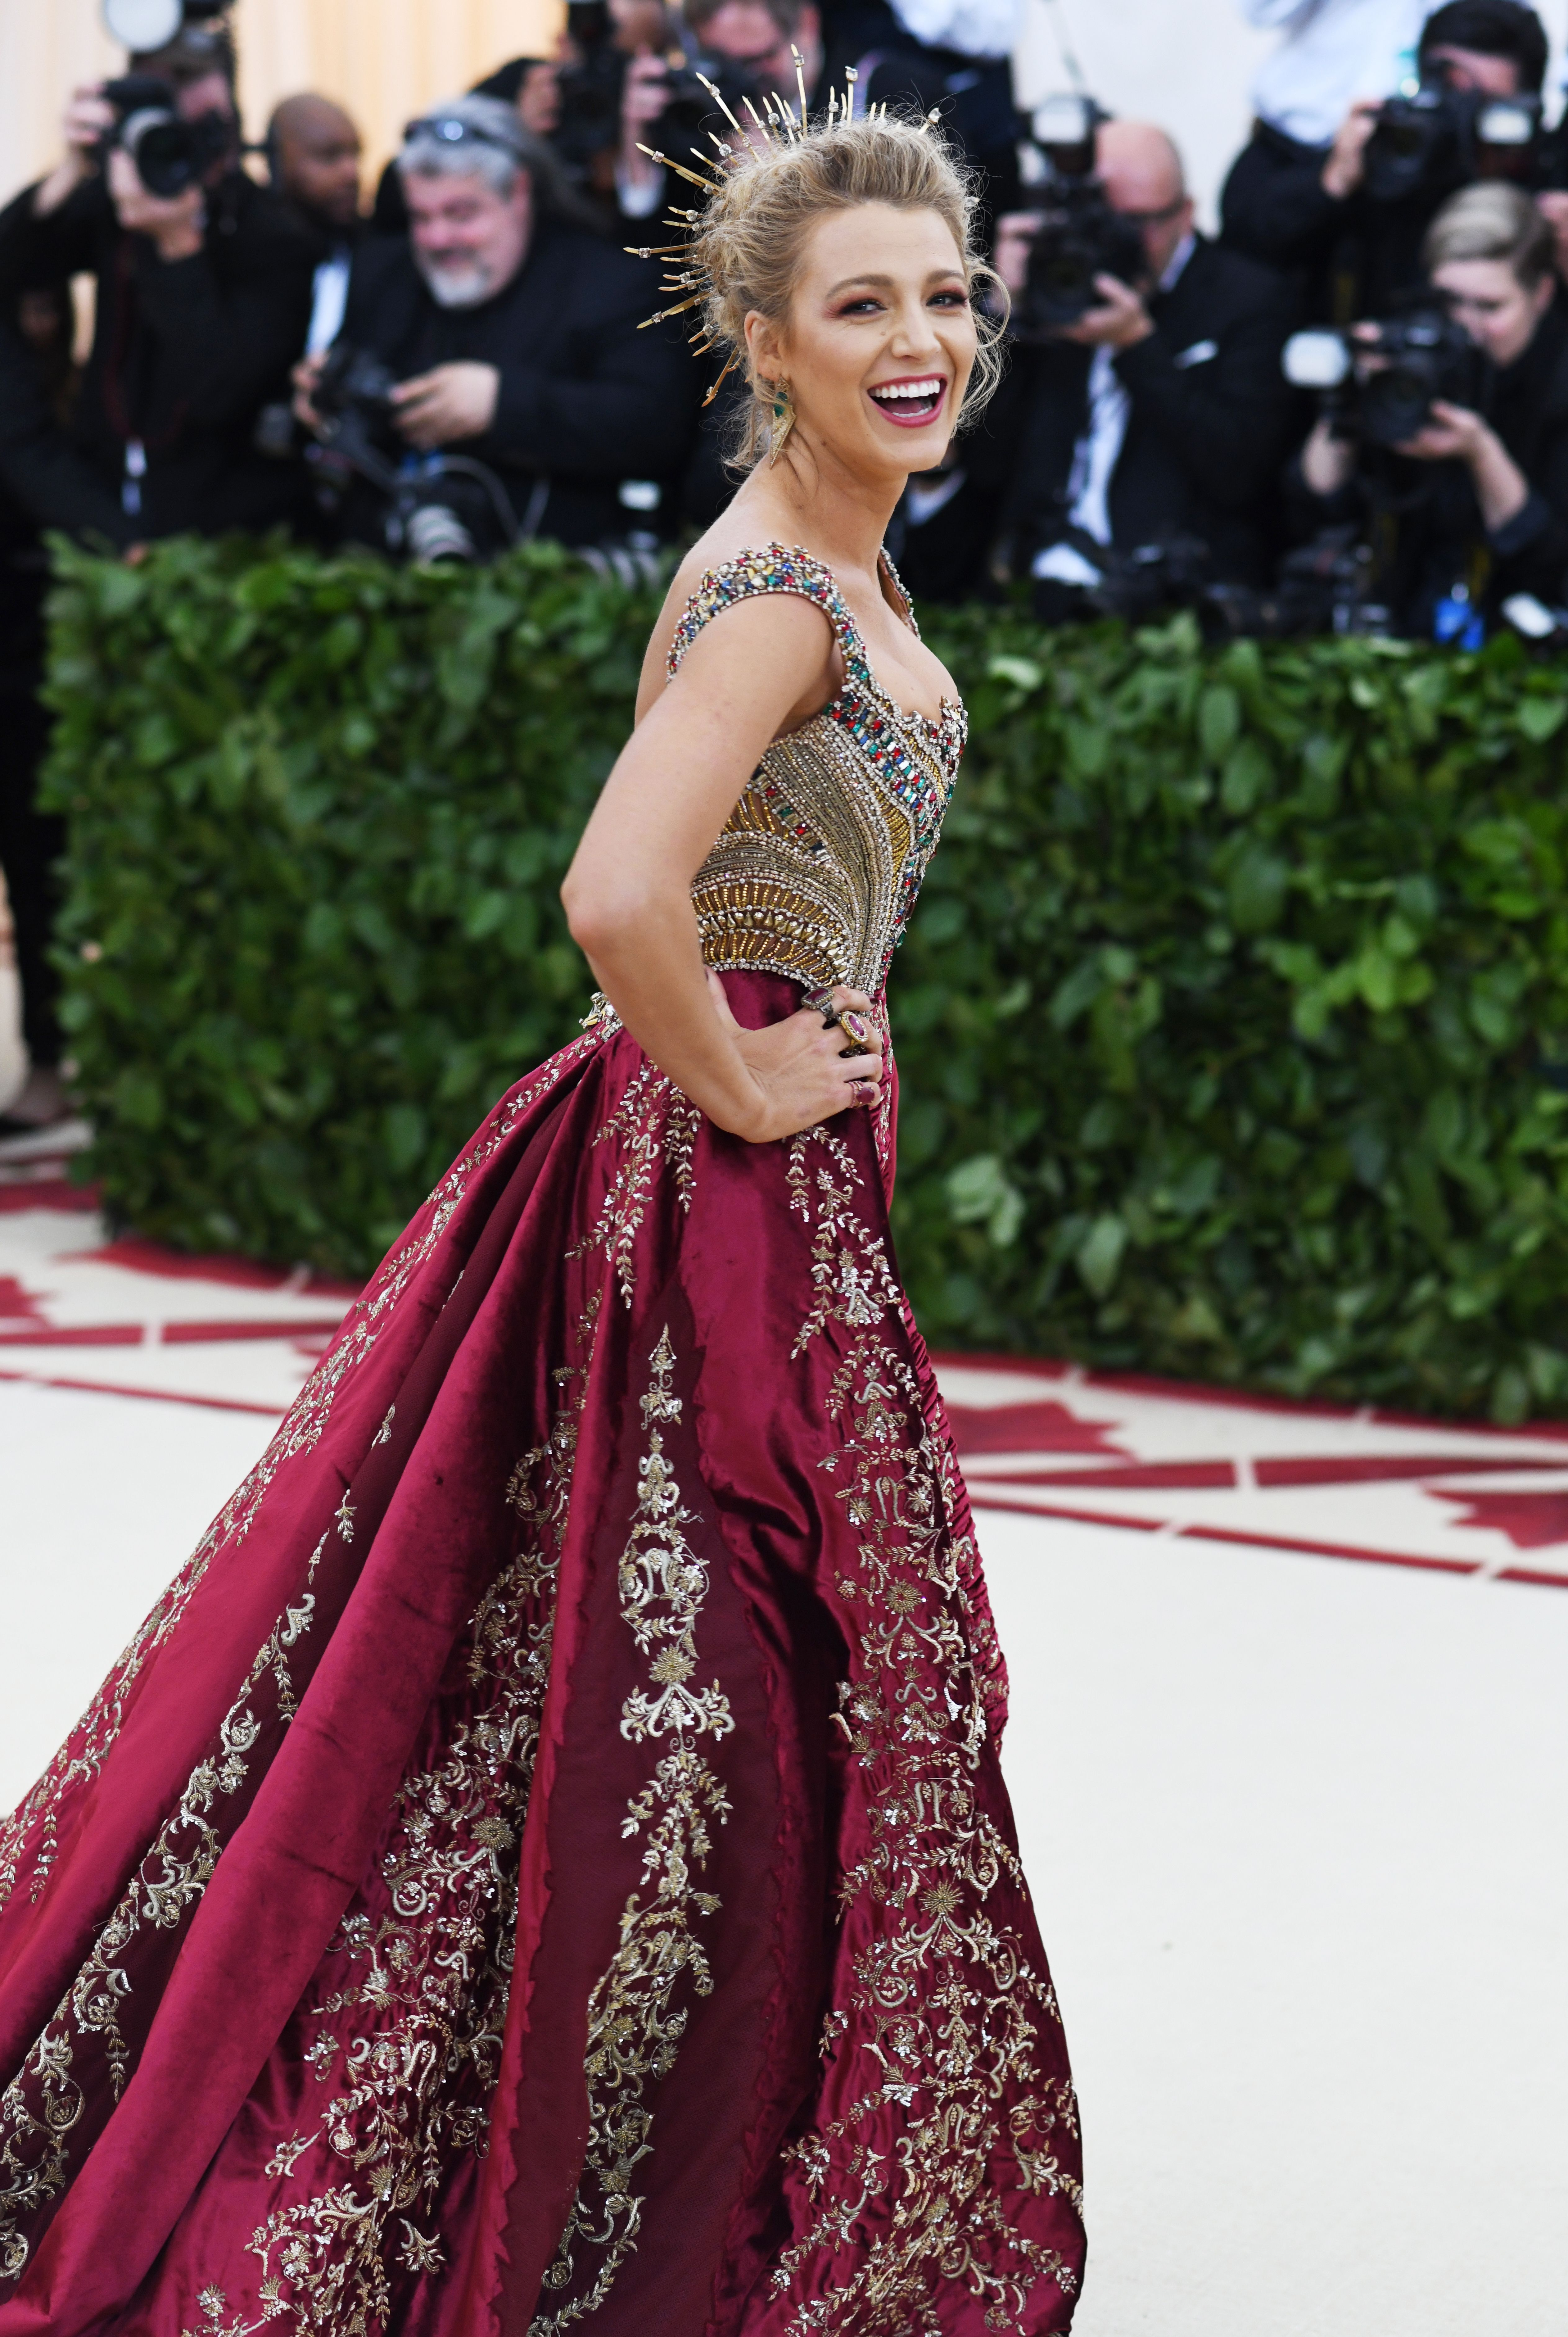 Met Gala 2018 The Best Red Carpet Beauty, Hair And Make